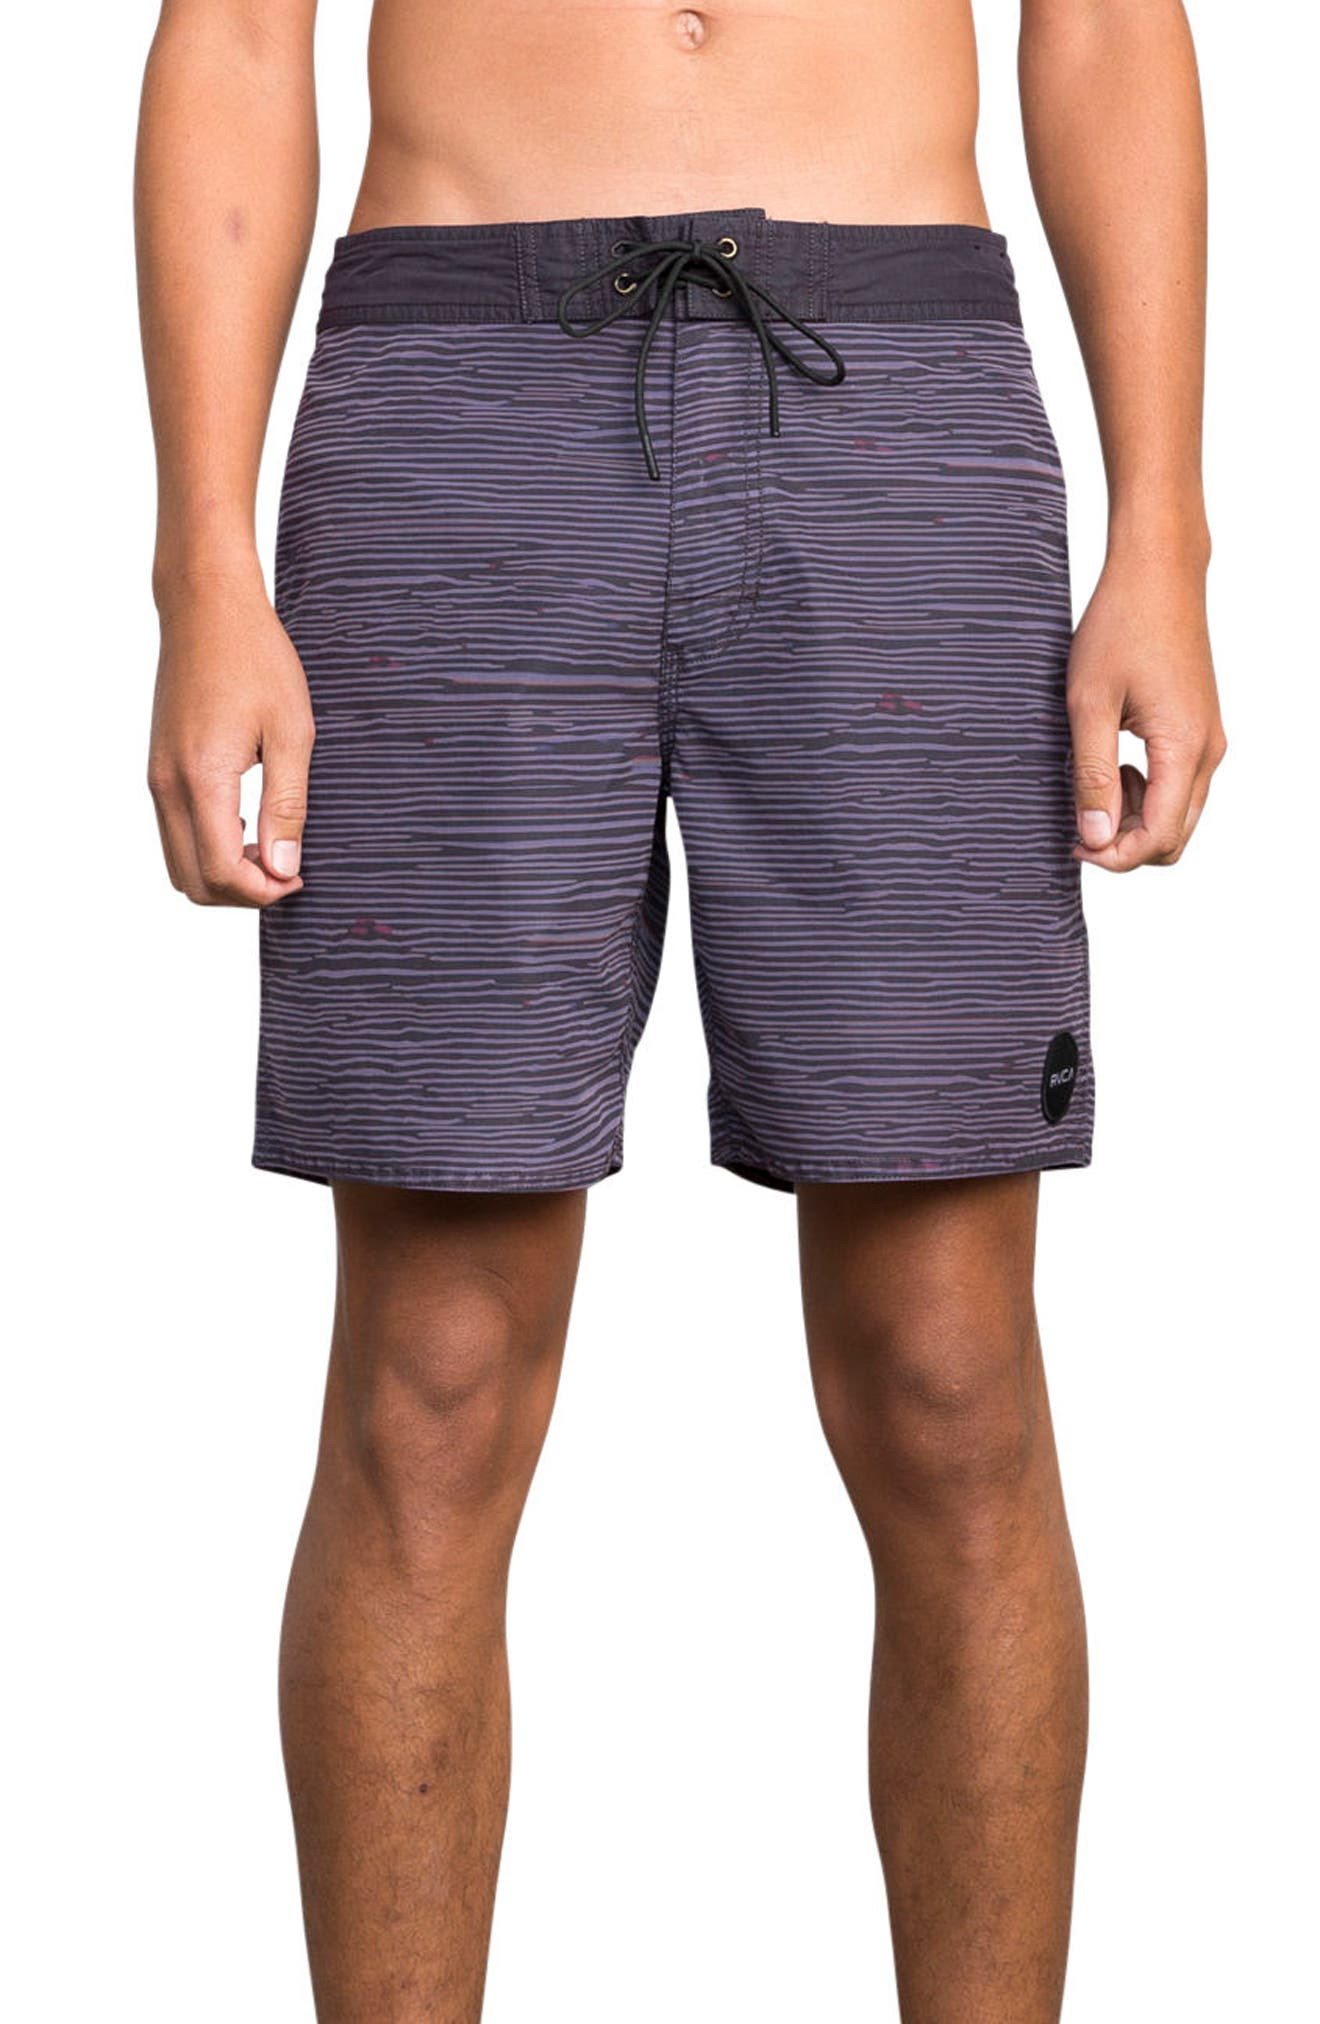 Flinch Board Shorts,                         Main,                         color, Dark Purple